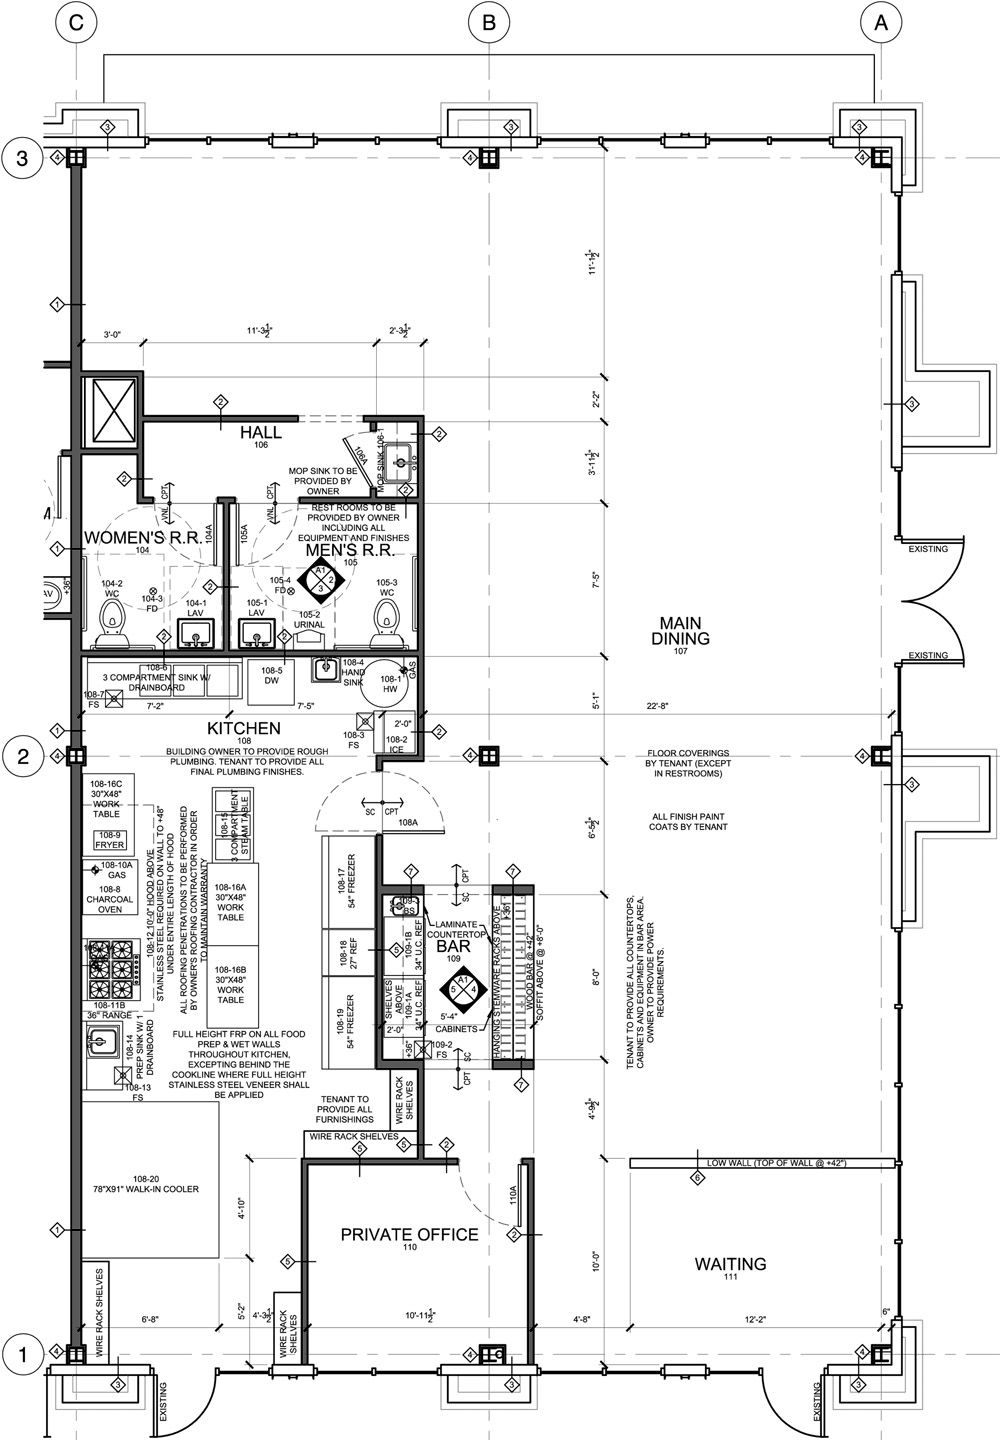 Small Restaurant Kitchen Layout Designing A Restaurant Floor Plan Home Design And Decor Reviews